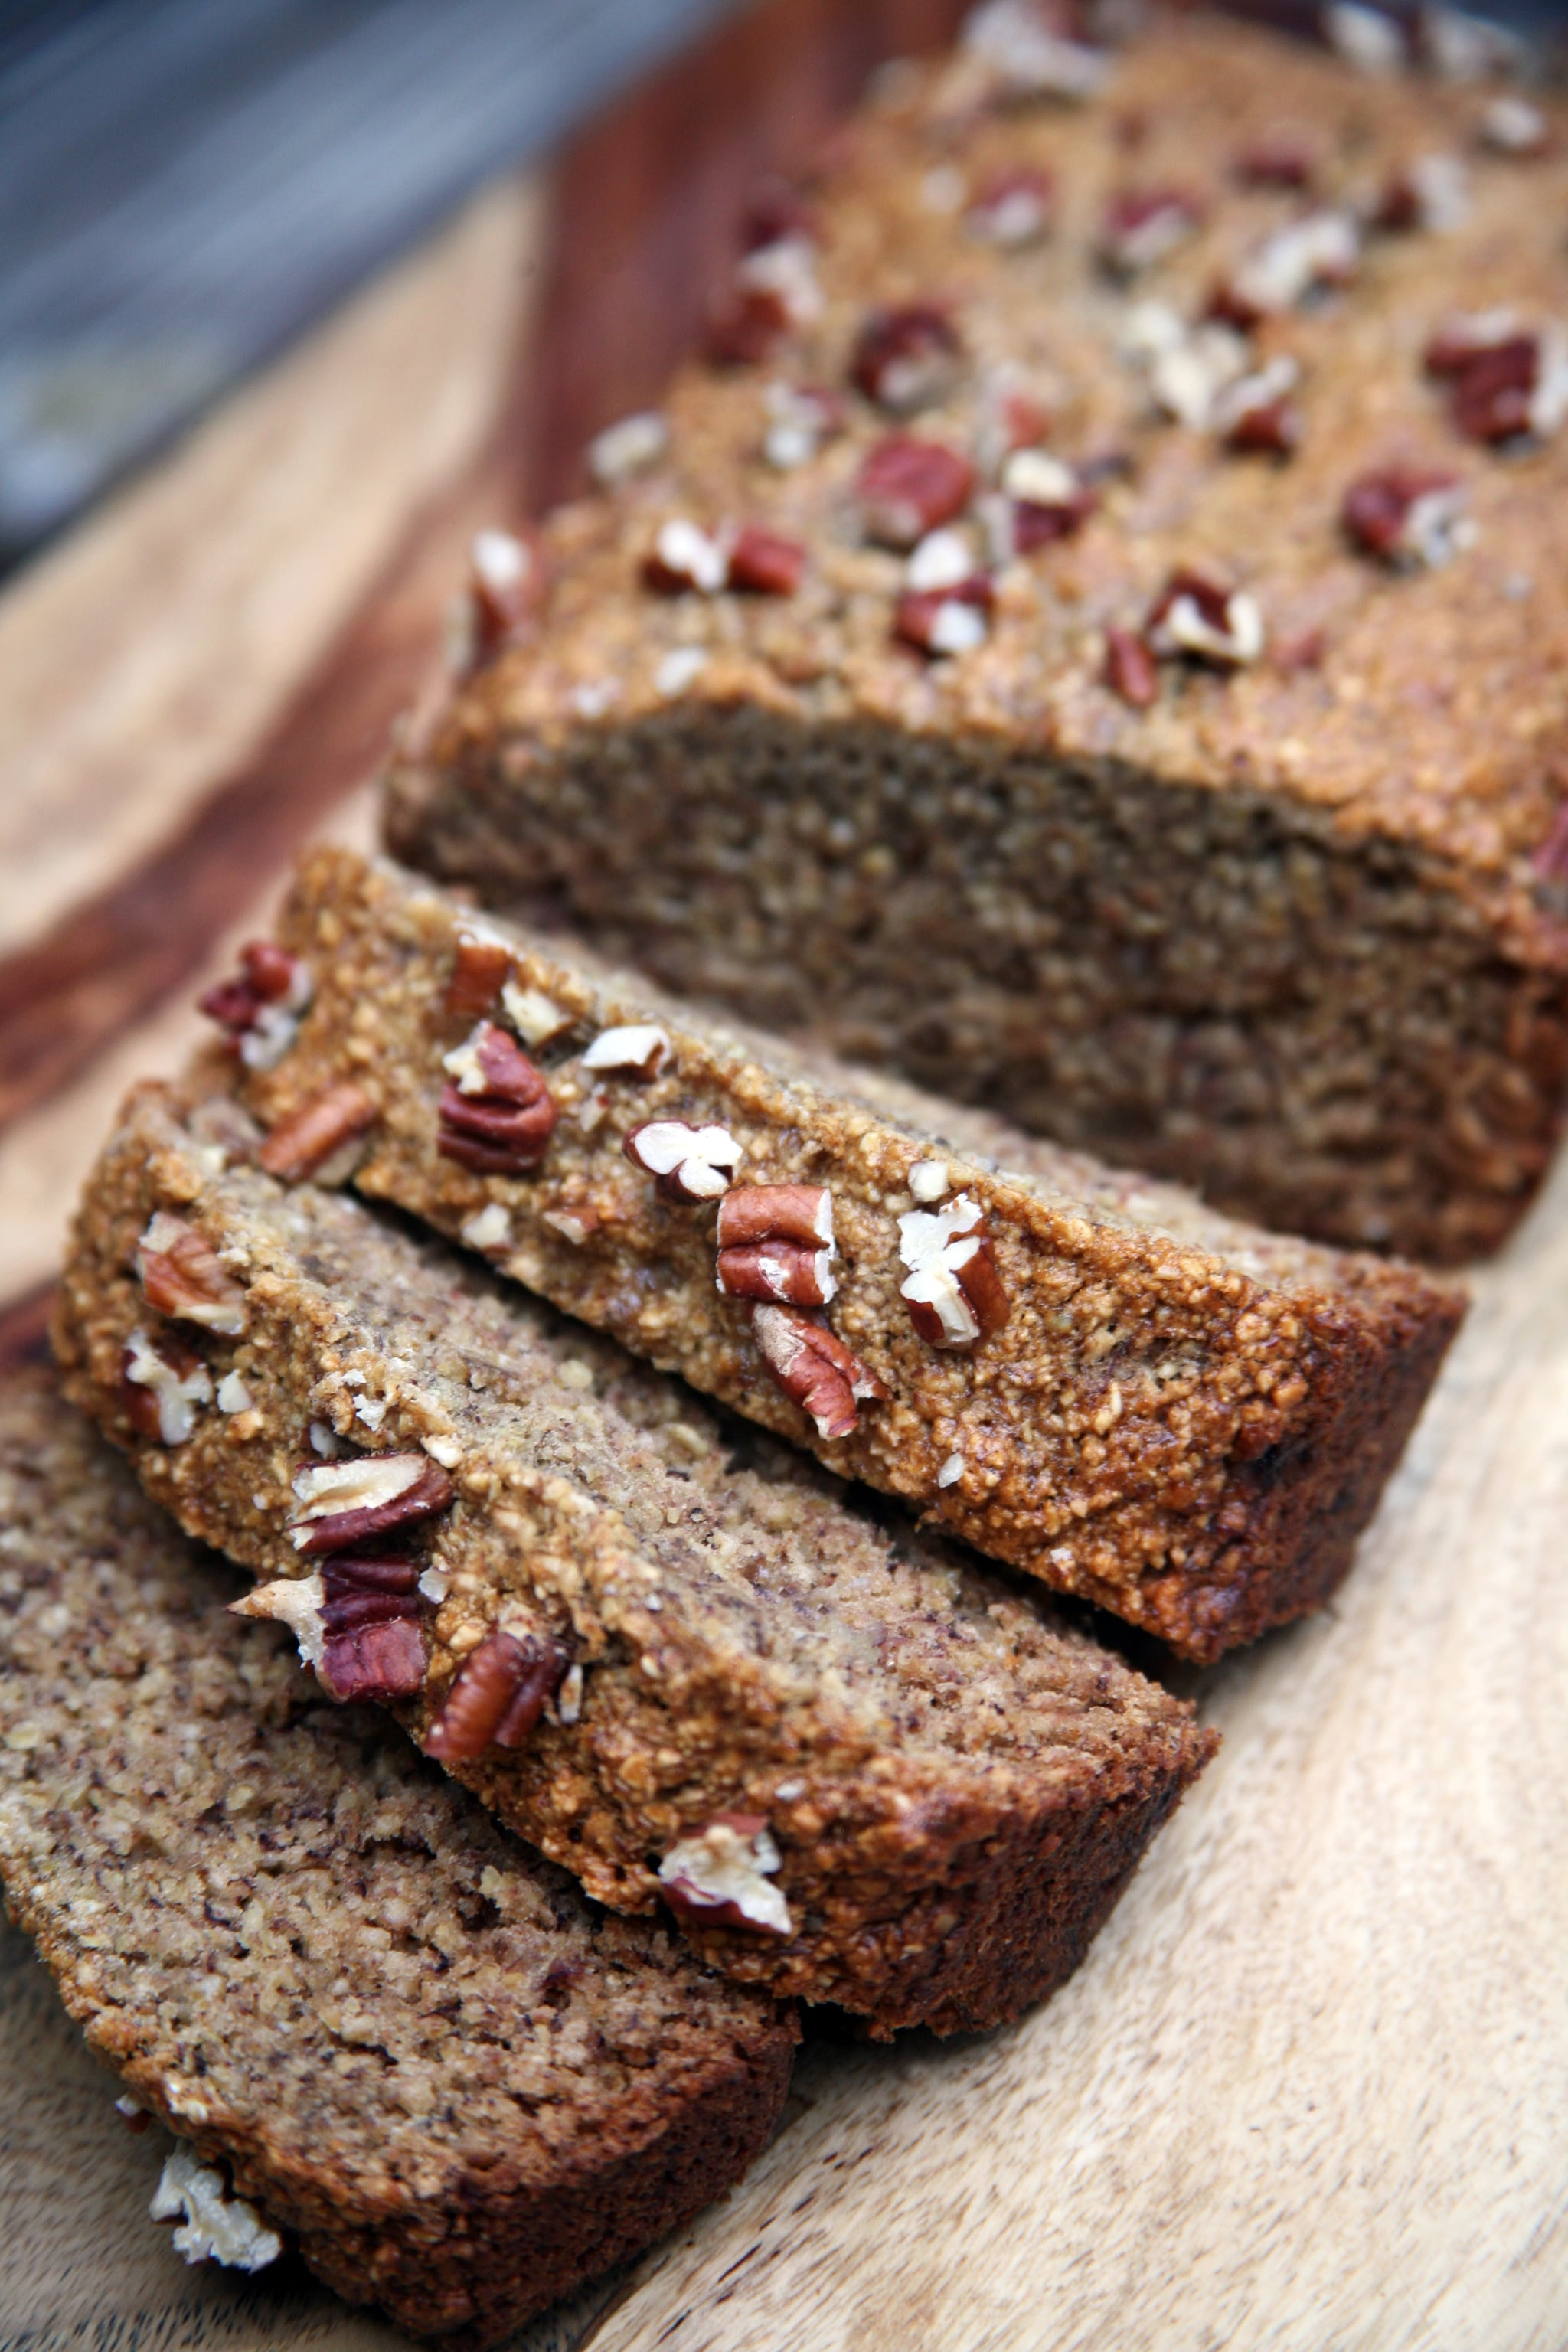 Gluten free banana bread popsugar fitness share this link forumfinder Choice Image